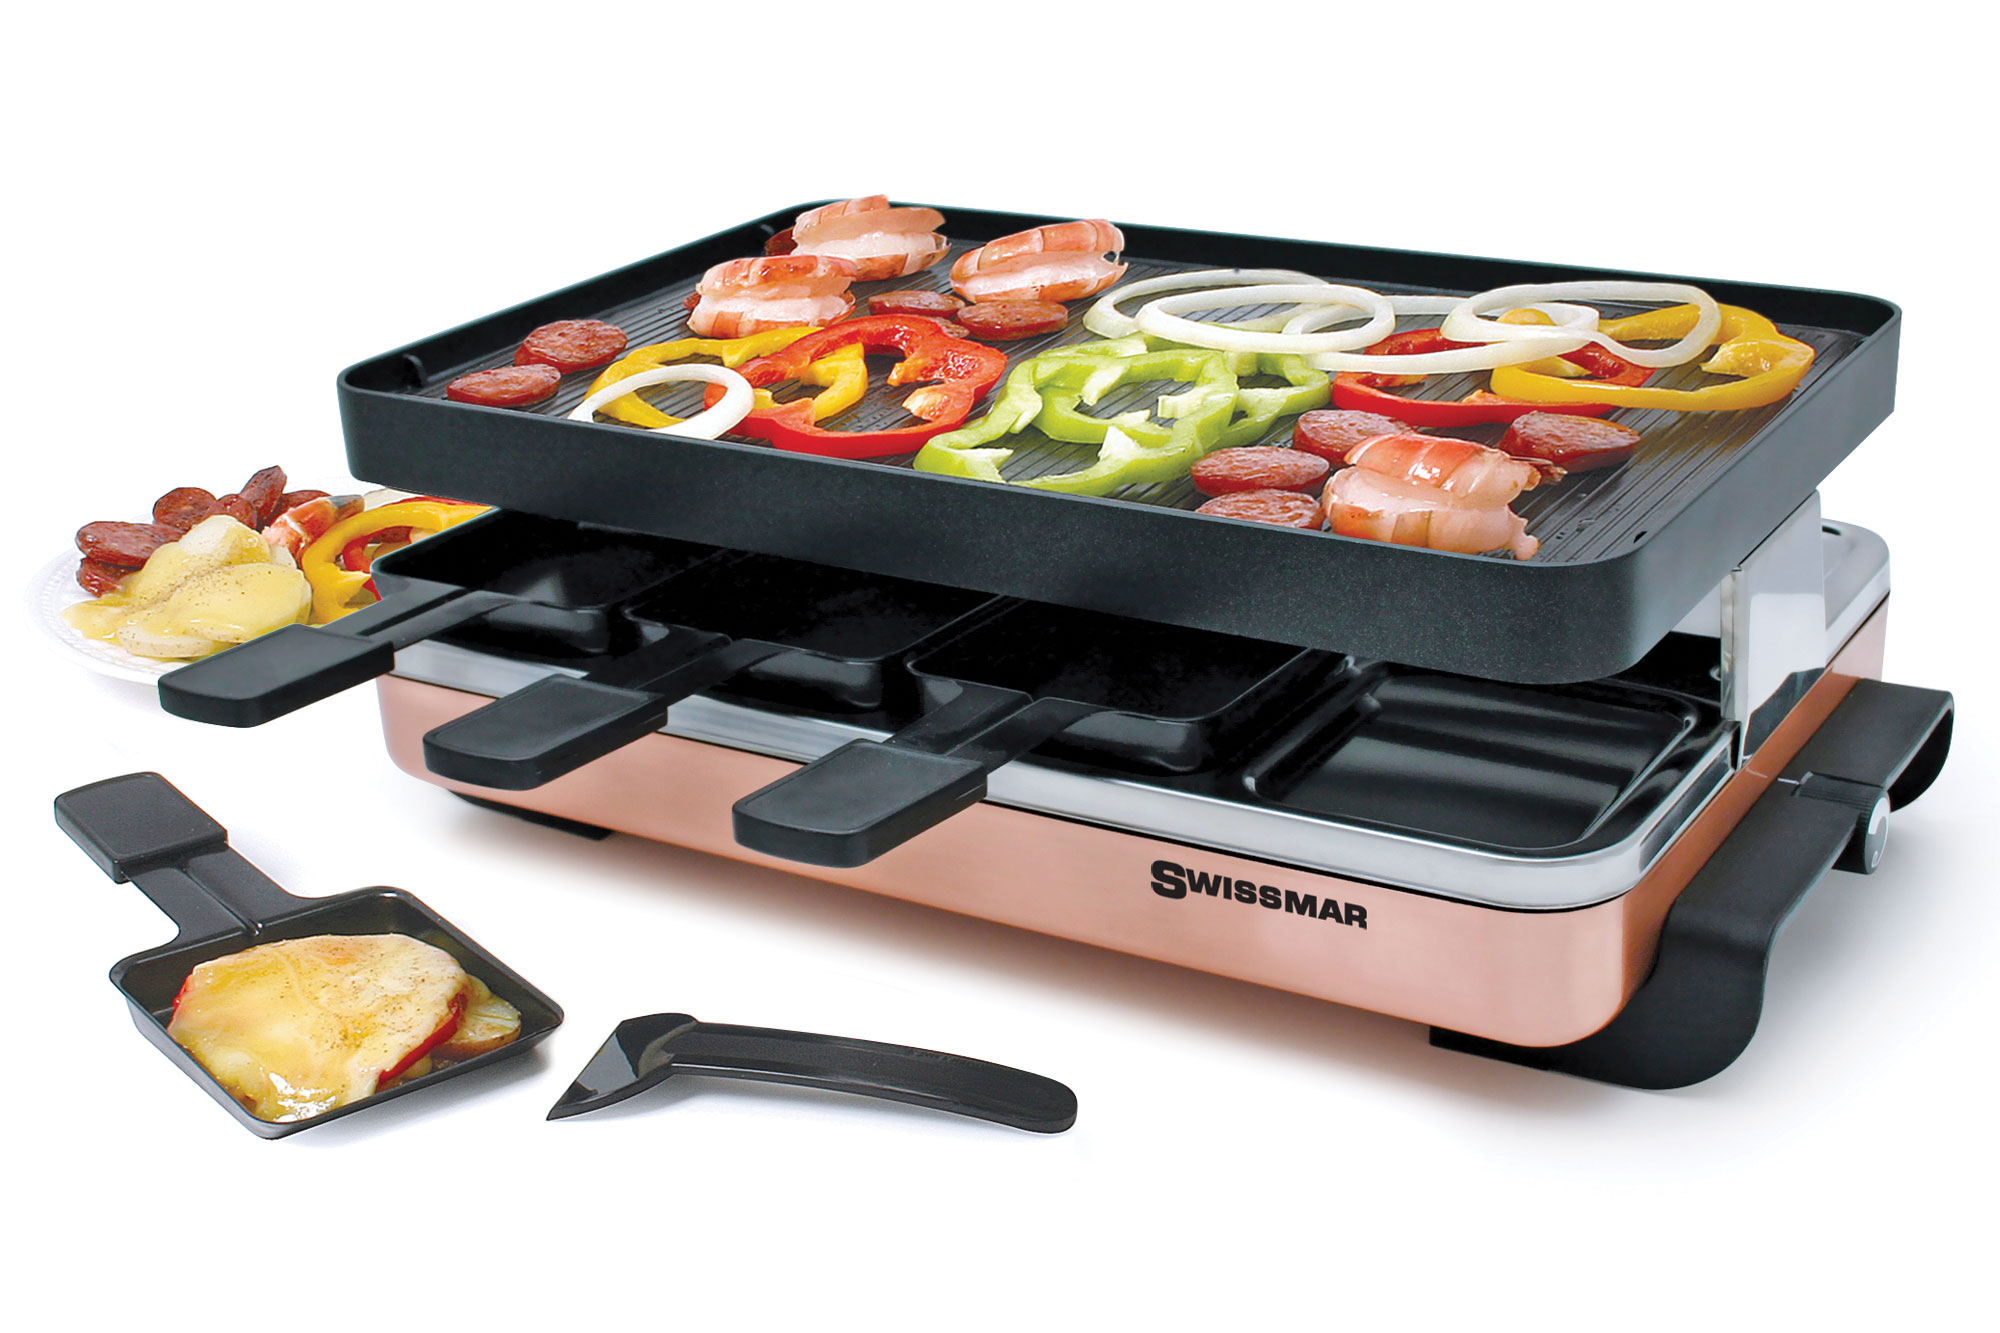 Swissmar Zermatt Copper Raclette Grill 8 Person Cutlery